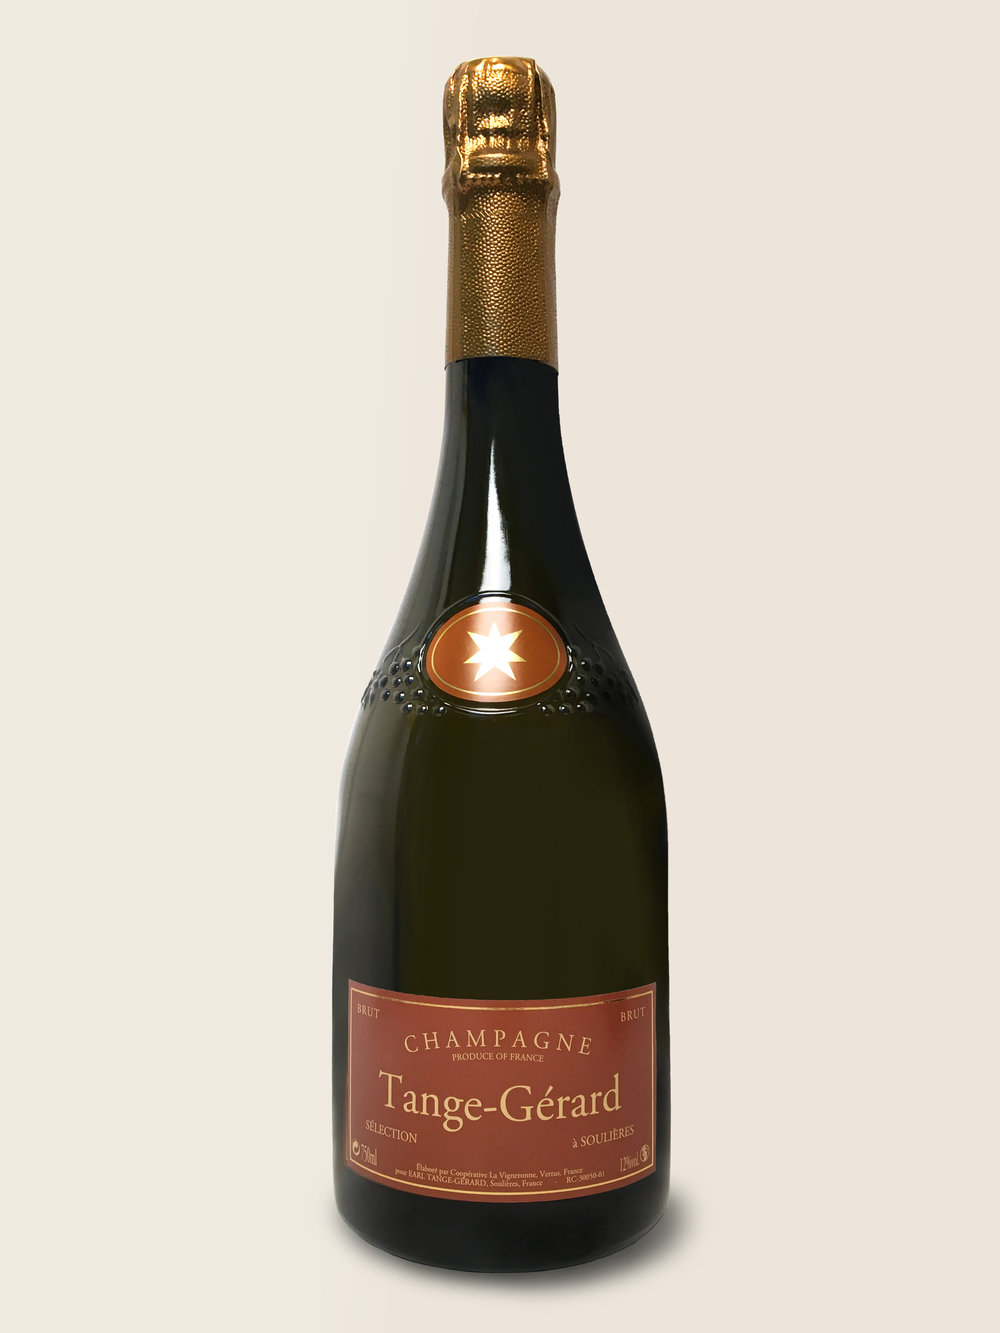 Selection - This champagne is perfect for everything you want it to be: The aperitif obviously but you may also want to invite it at your table with lobster, mushrooms, duck or why not with a wintry cheese like Mont d'Or.